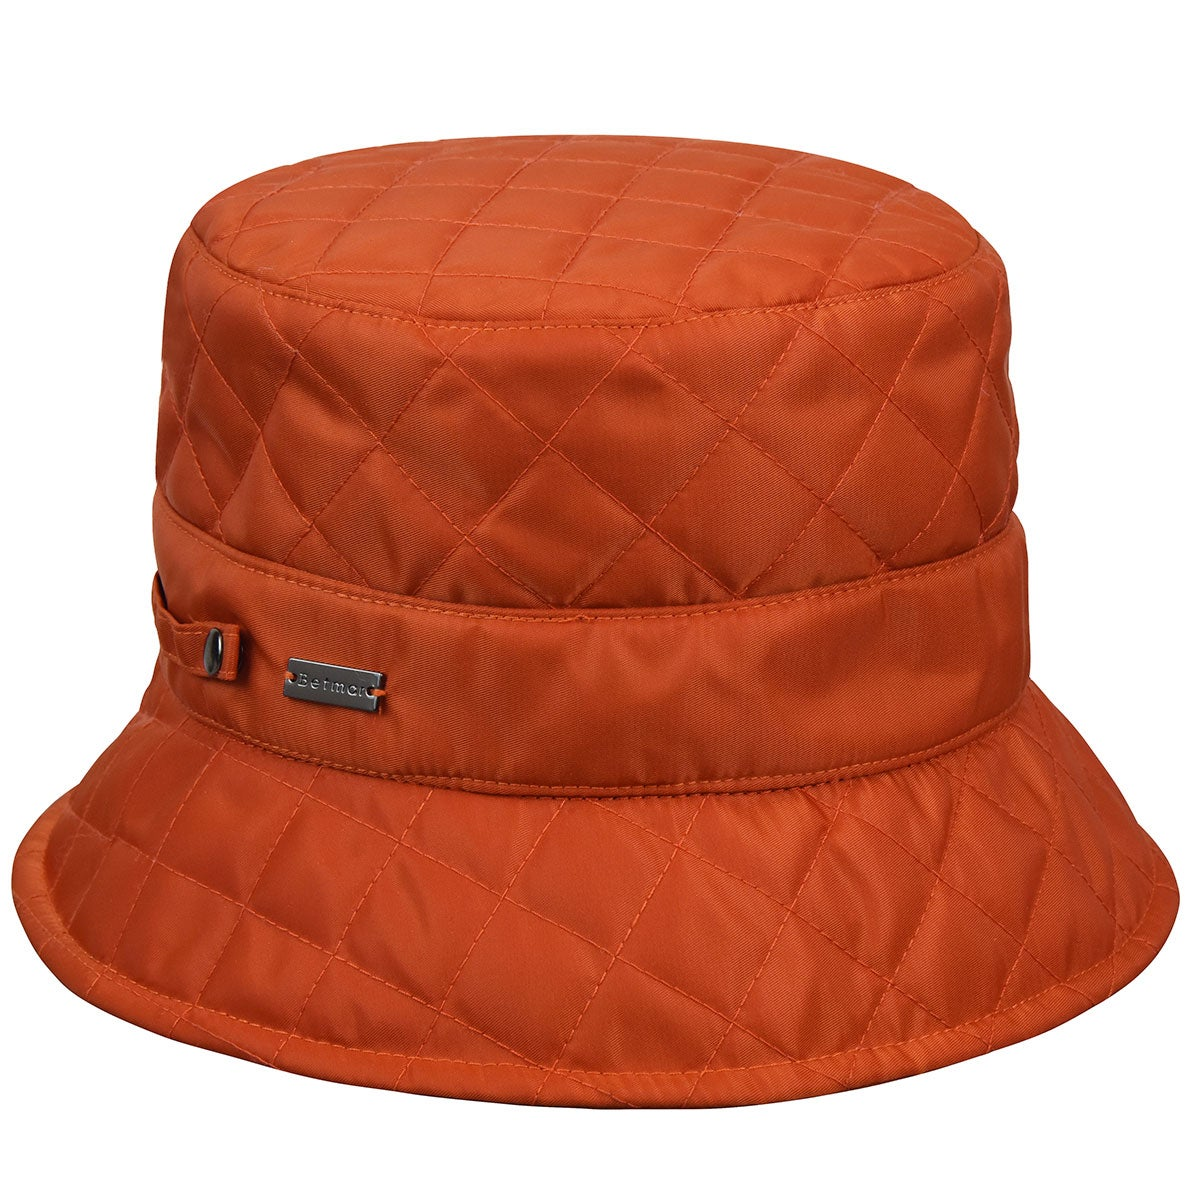 Betmar Quilted Rain Bucket in Sunset